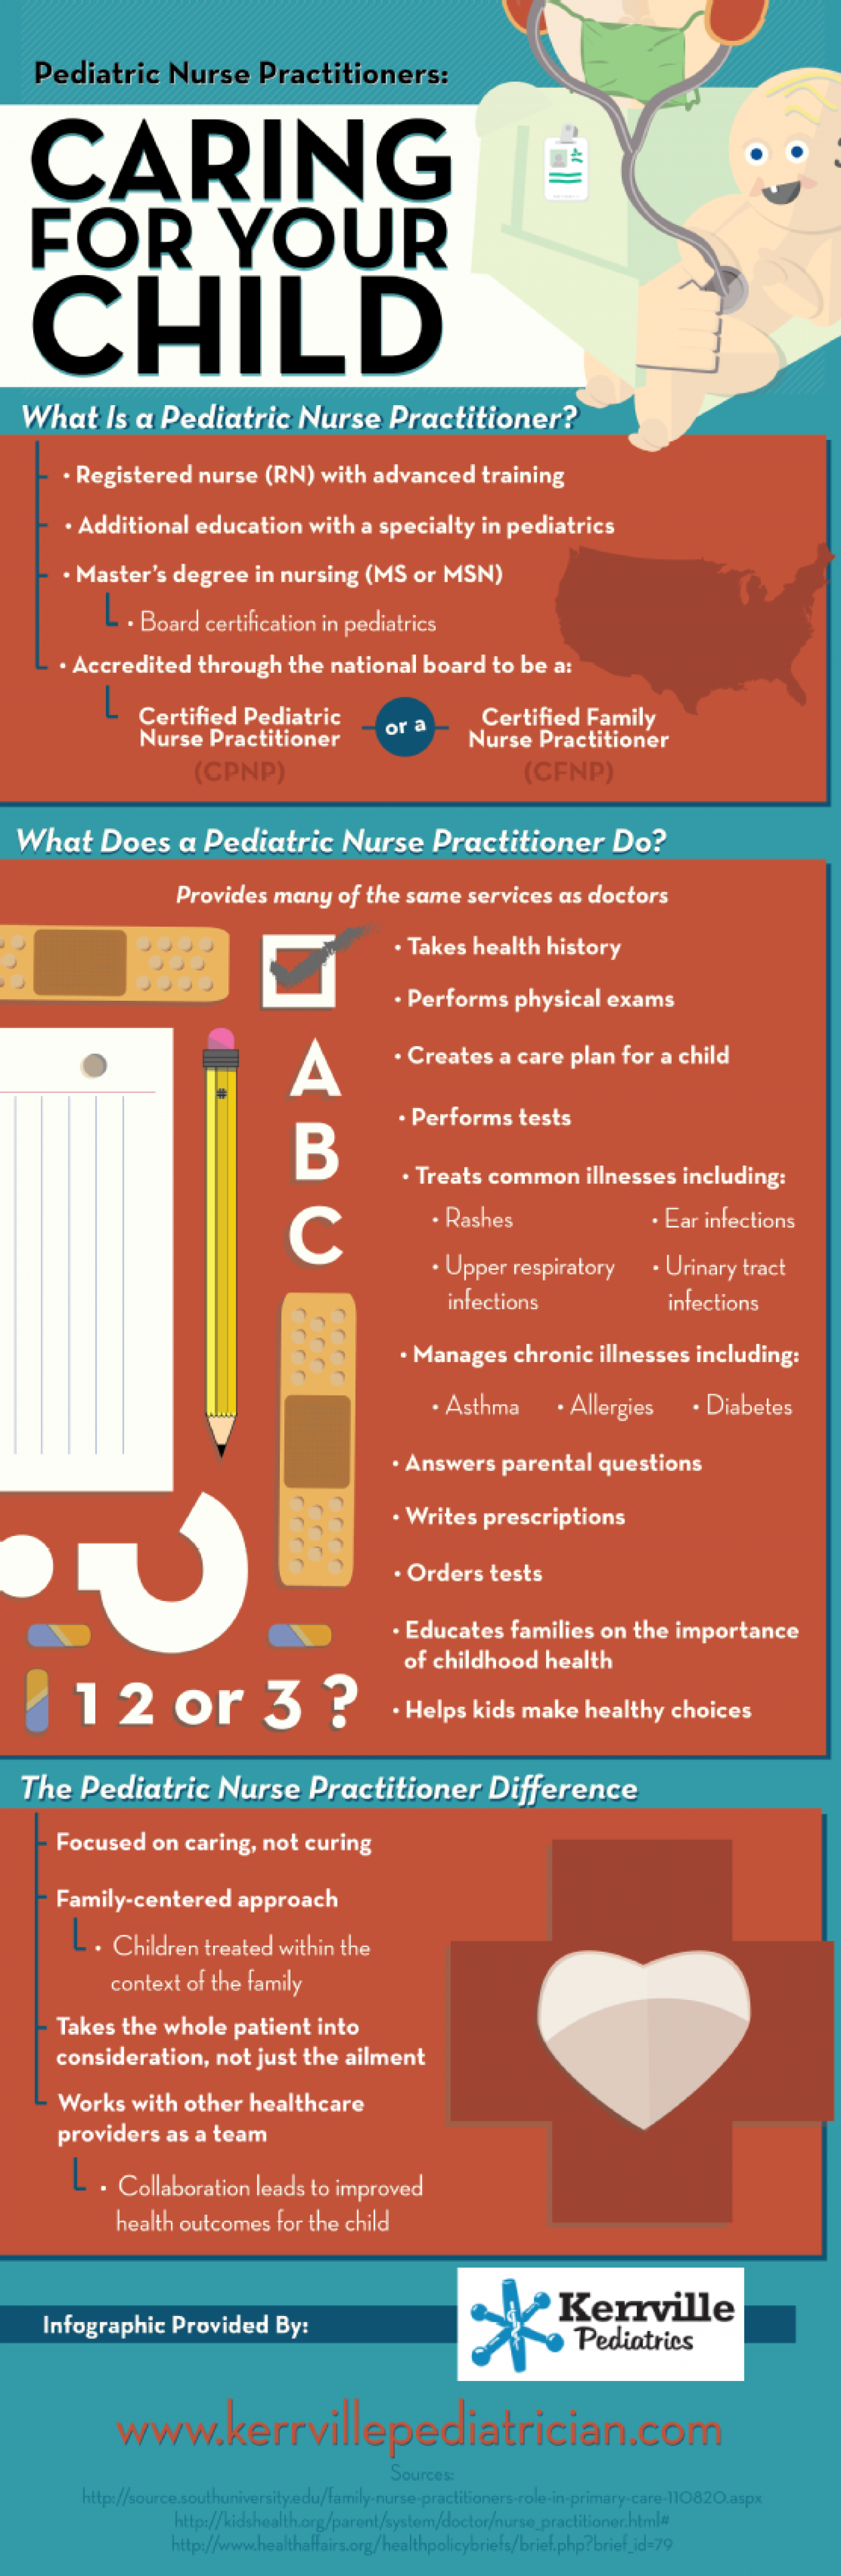 Pediatric Nurse Practitioners: Caring for Your Child Infographic